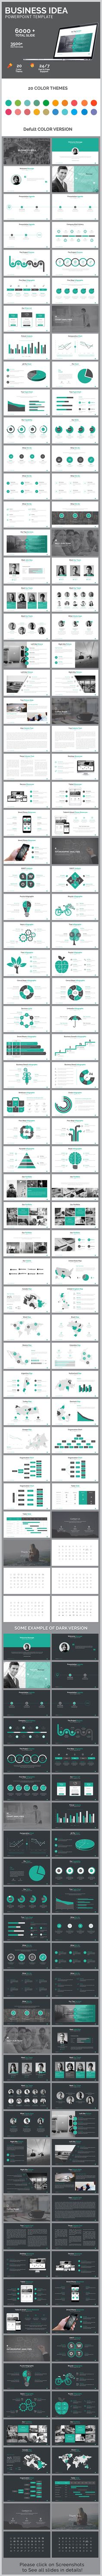 Business Idea Powerpoint Presentation Template — Powerpoint PPTX #business presentation #powerpoint • Download ➝ https://graphicriver.net/item/business-idea-powerpoint-presentation-template/19162663?ref=pxcr